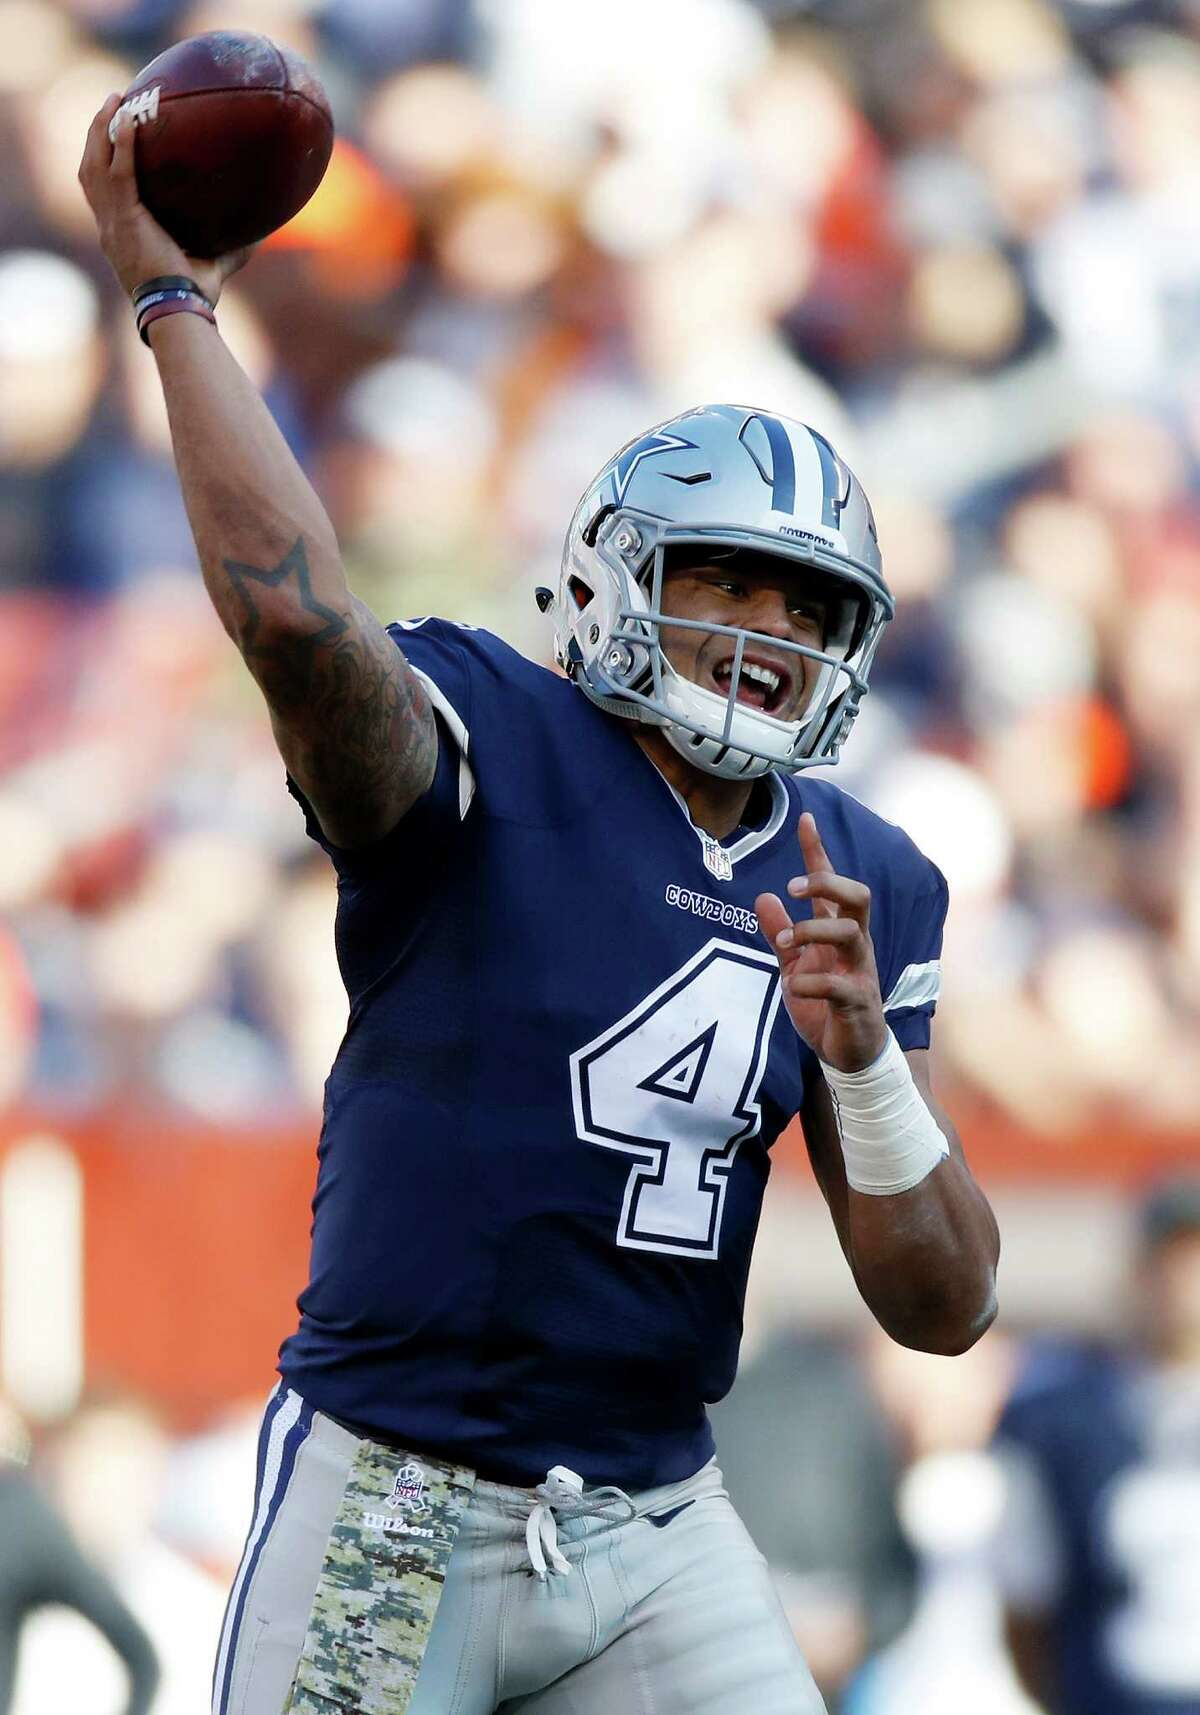 CLEVELAND, OH - NOVEMBER 06: Dak Prescott #4 of the Dallas Cowboys looks to pass against the Cleveland Browns at FirstEnergy Stadium on November 6, 2016 in Cleveland, Ohio. (Photo by Gregory Shamus/Getty Images)